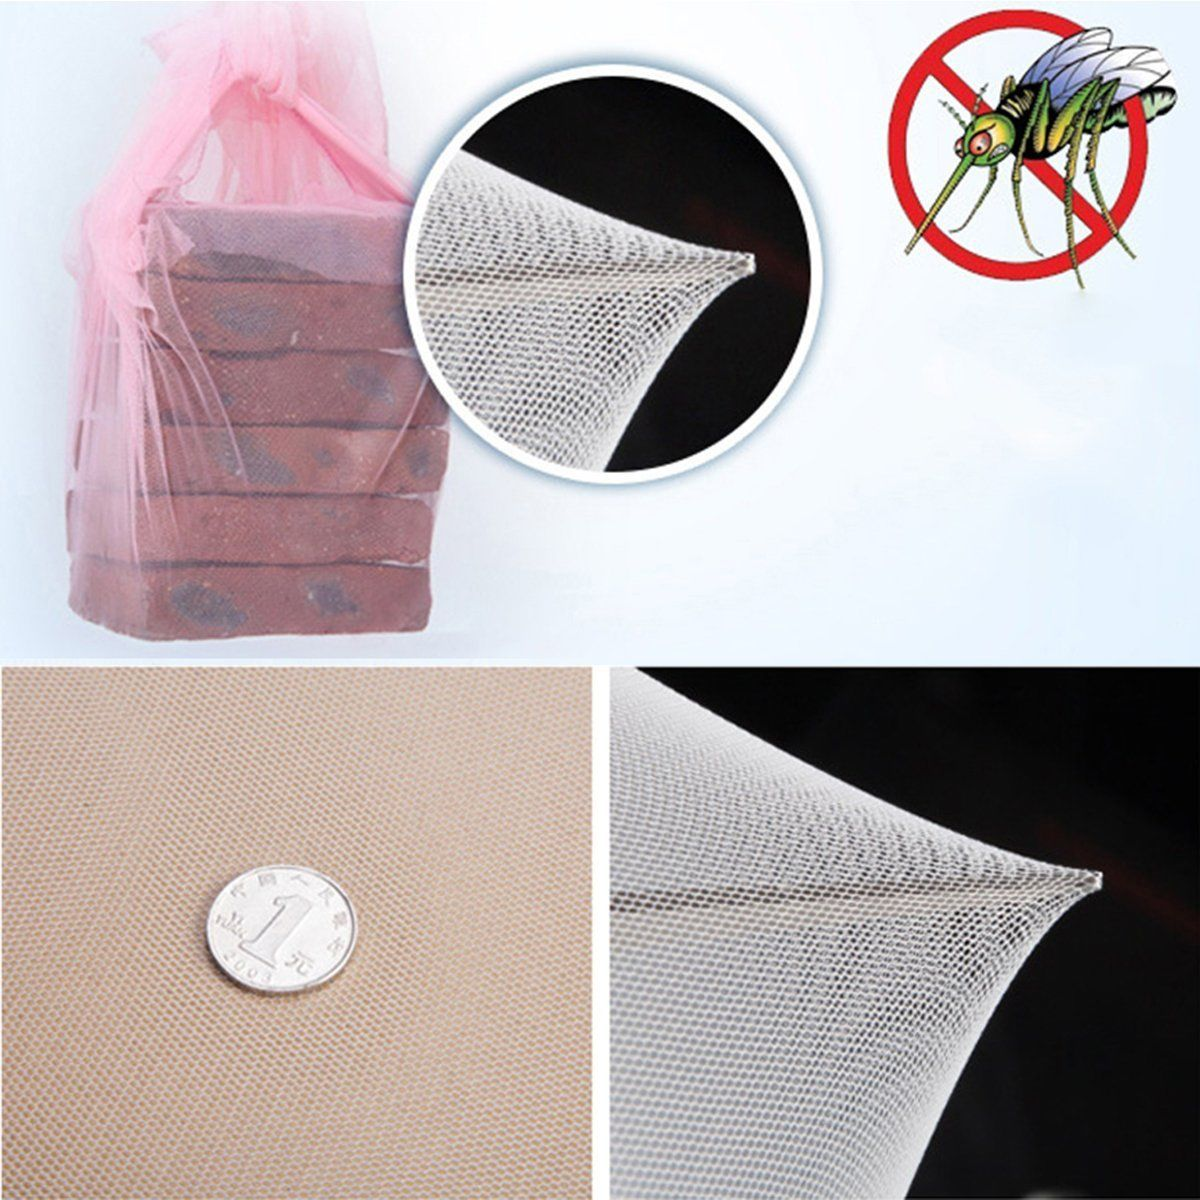 Mosquito-Net-Double-Queen-King-Size-Box-Fly-Insect-Bug-Protection-Netting-US thumbnail 2